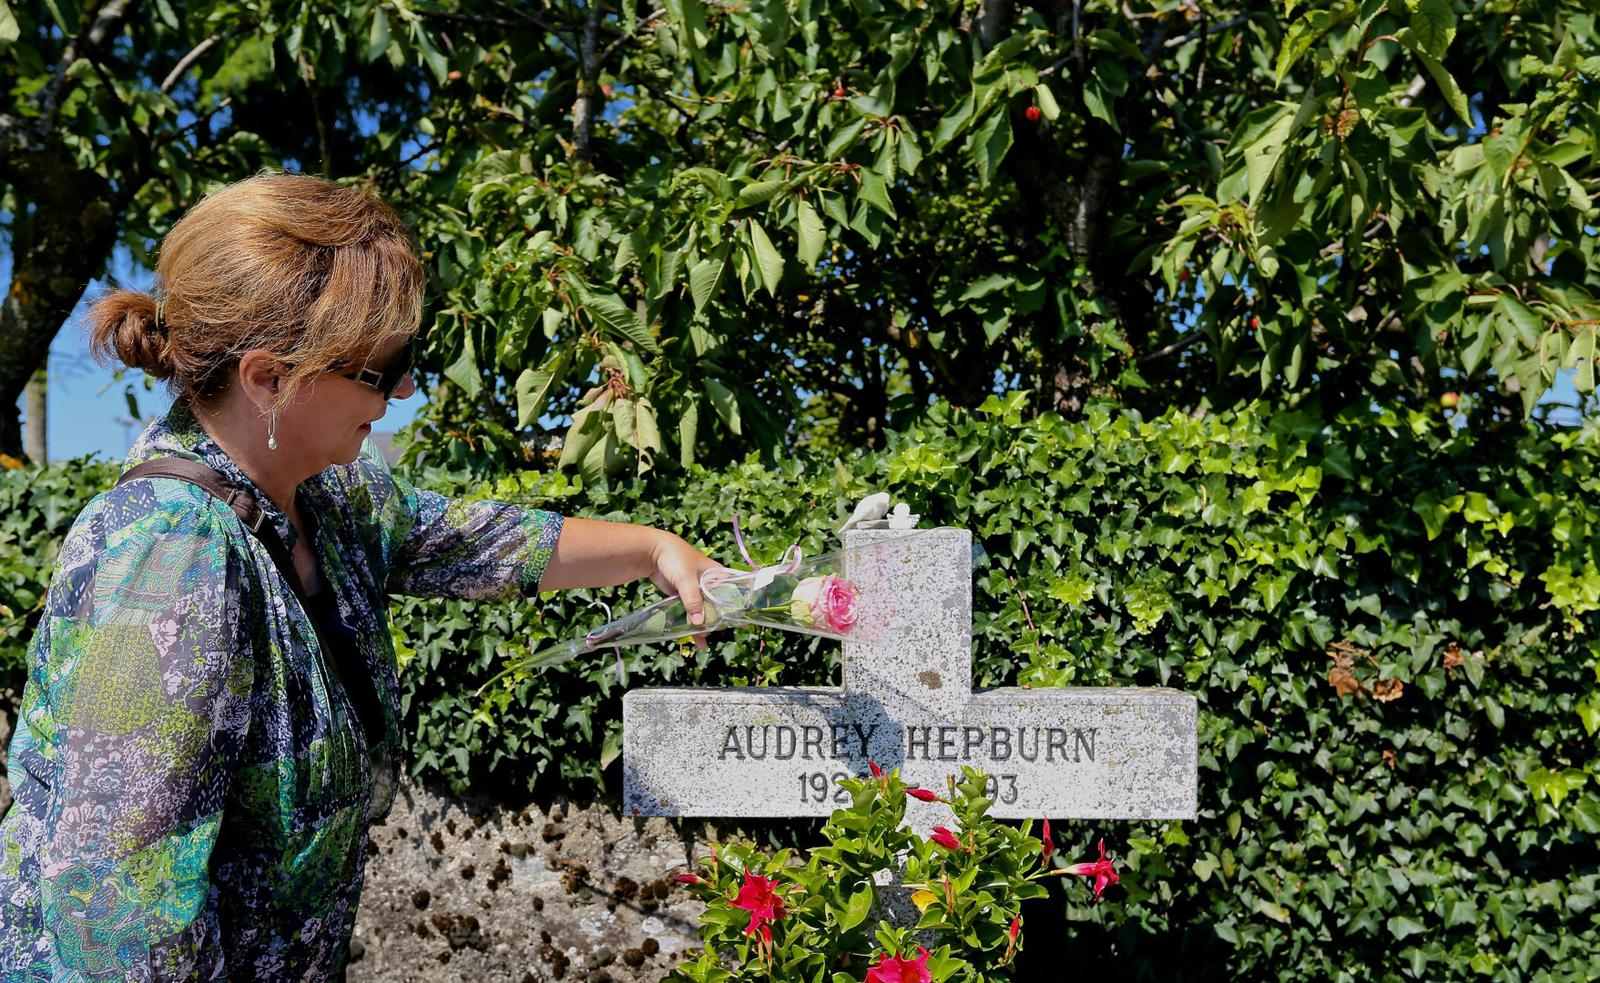 Following audrey hepburns footsteps through switzerland trivago audrey hepburns grave in switzerland mightylinksfo